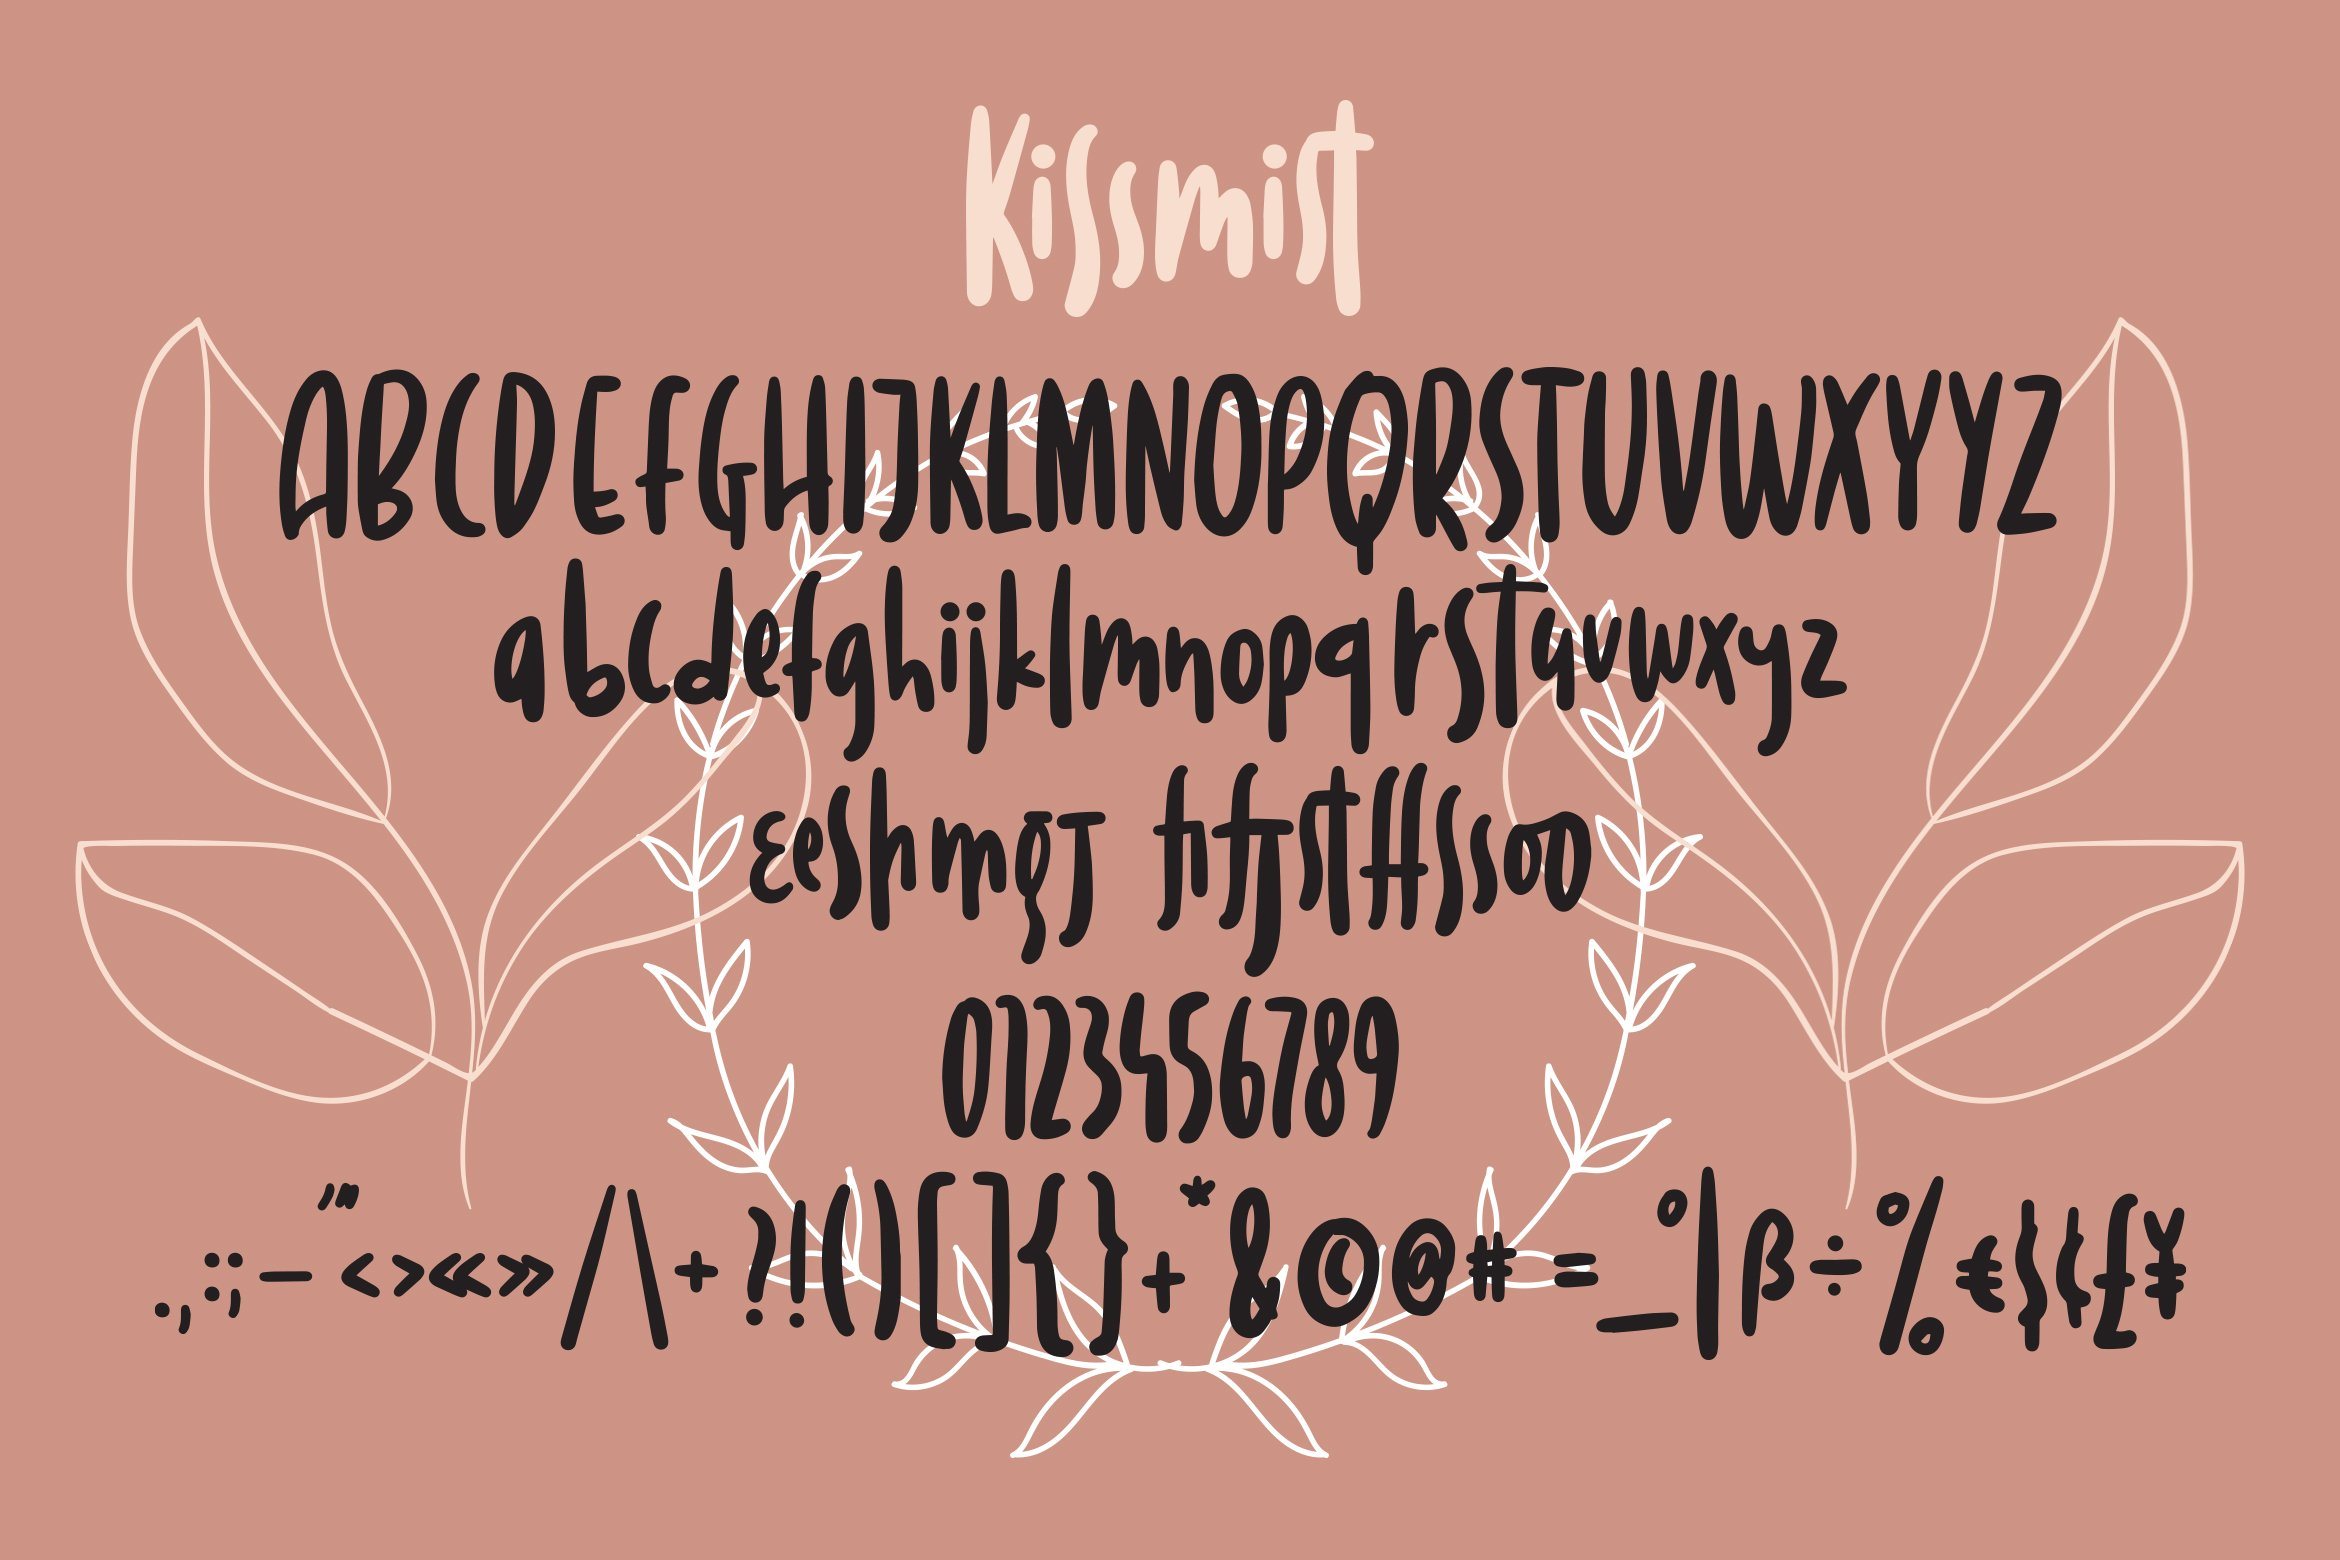 Kissmist - Fancy Sans Font example image 4